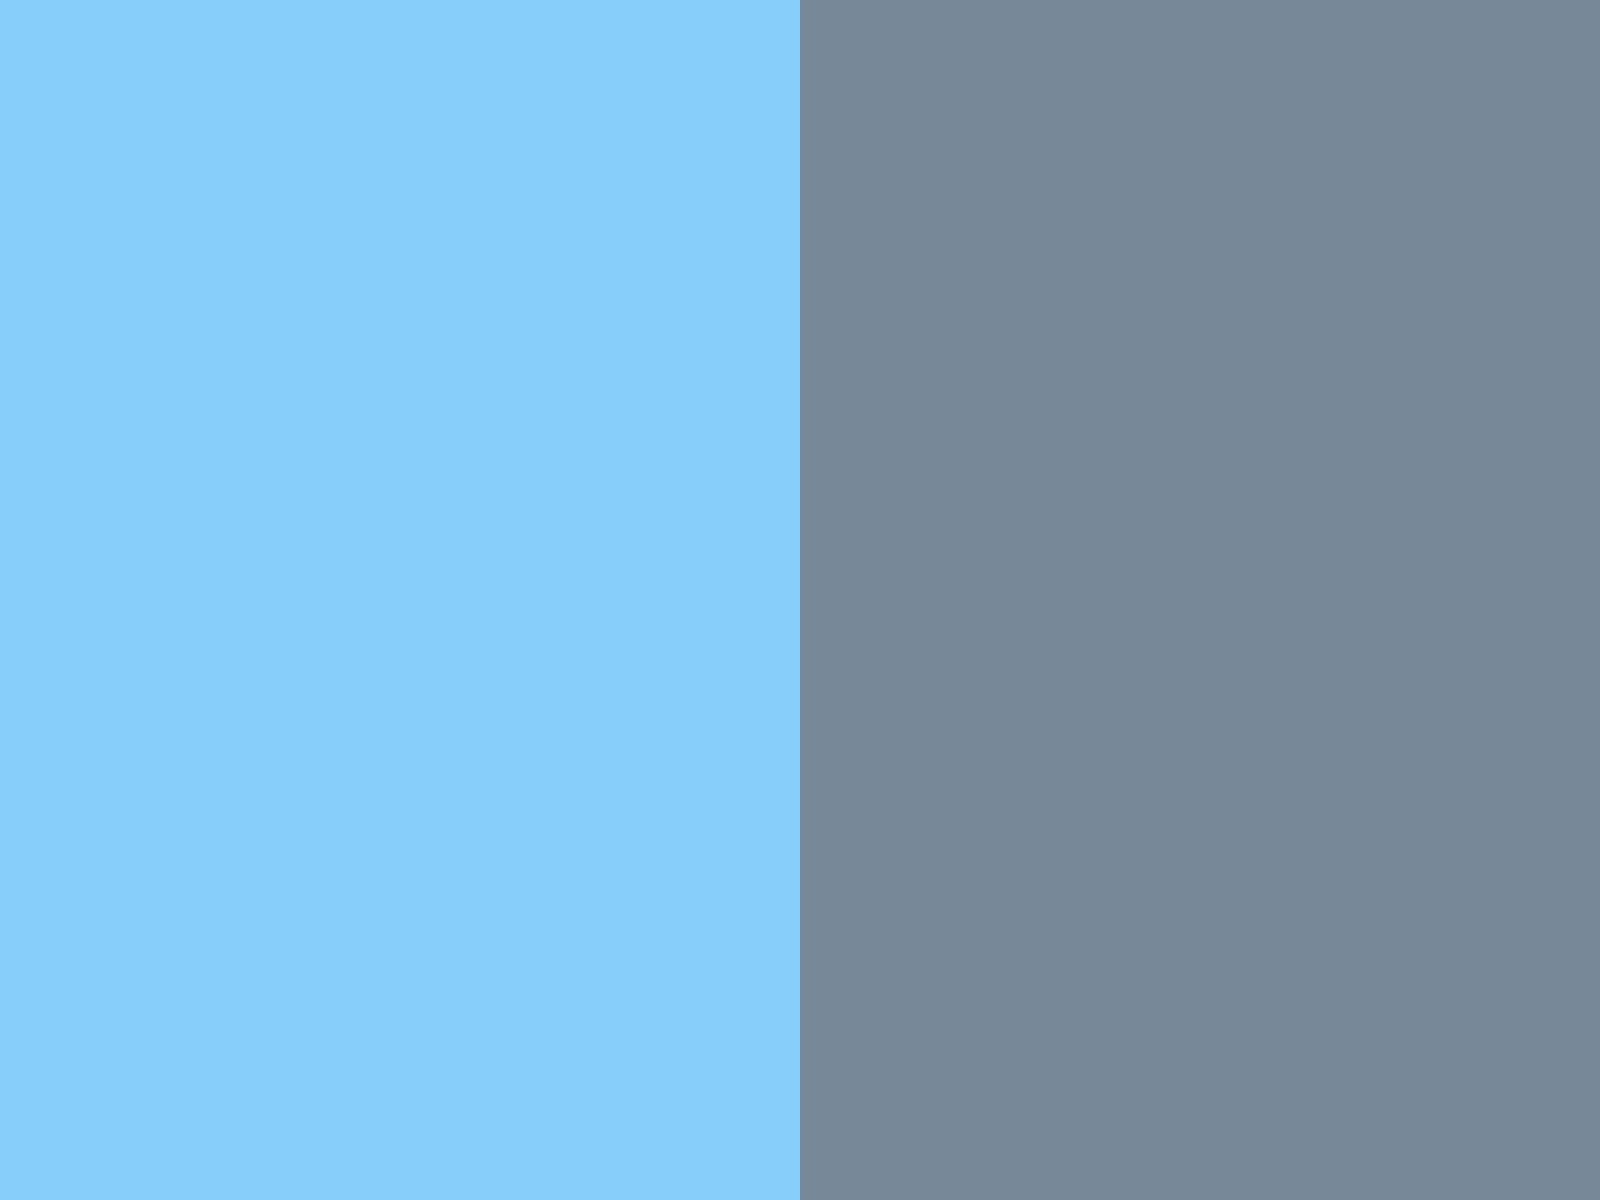 Gray And Blue Wallpaper  Wallpapersafari. Restaurant Kitchen Floor Mats. How To Install Wall Tile In Kitchen. Commercial Kitchen Appliances For Home. Bar In Kitchen. Small Kitchen Design Plans. Universal Kitchen. Galley Kitchen Remodel Pictures. Express Manna Kitchen